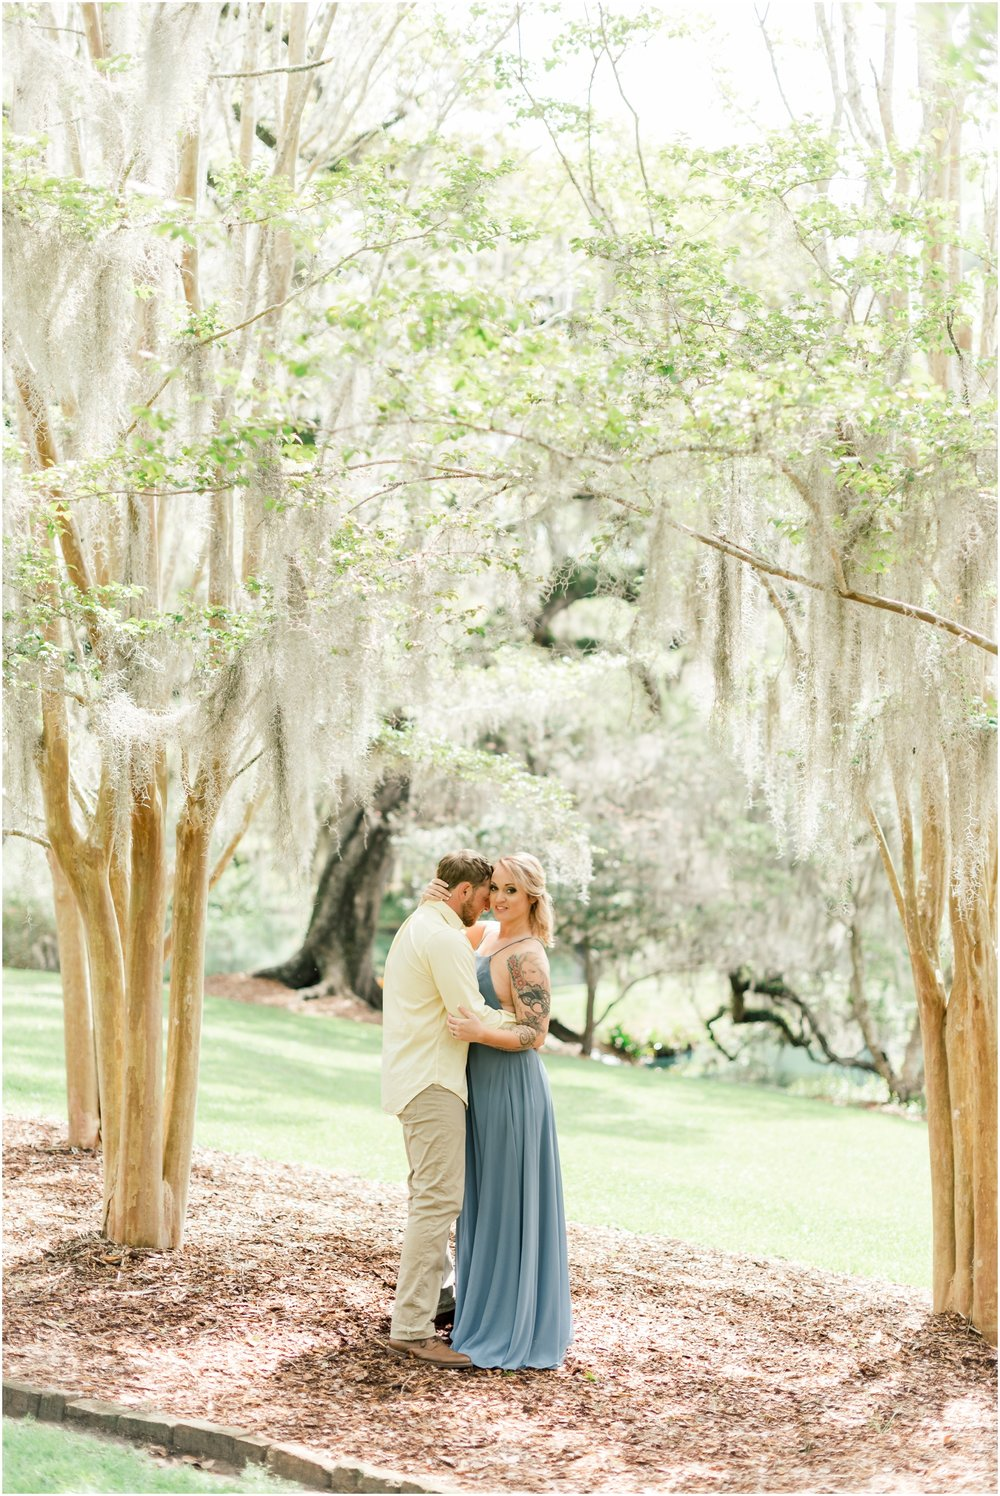 Mepkin-Abbey-Moncks-Corner-South-Carolina-Engagement-Session-Photos_0008.jpg